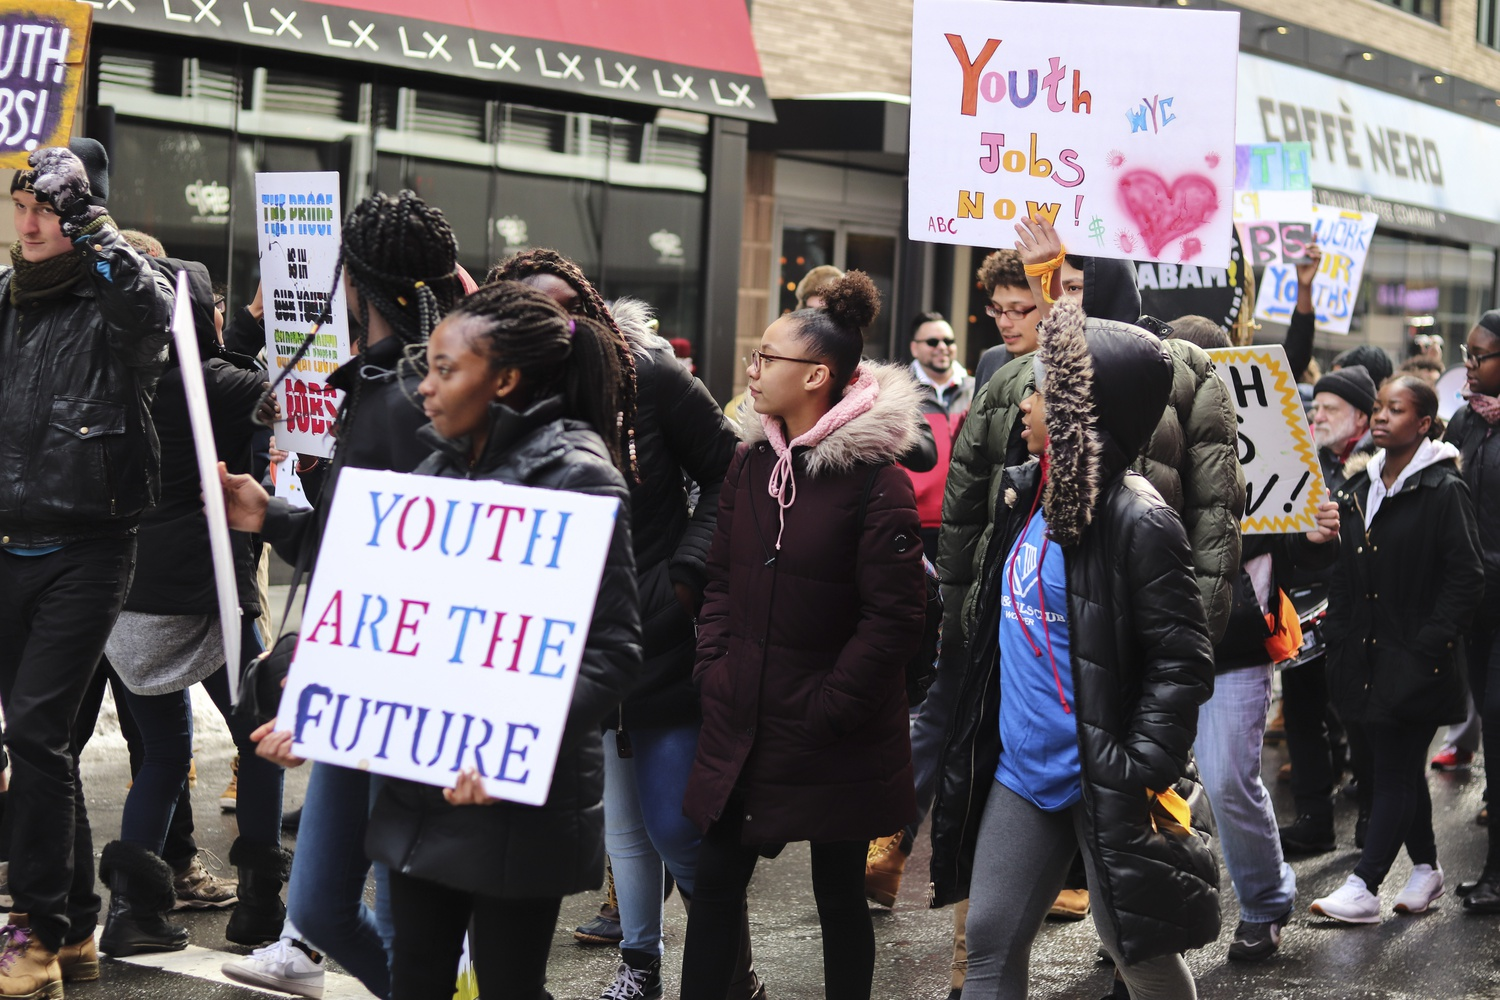 The March for Youth Jobs took place in downtown Boston Thursday afternoon. The crowd included many high school students from around the area as well as a band and adult supporters.